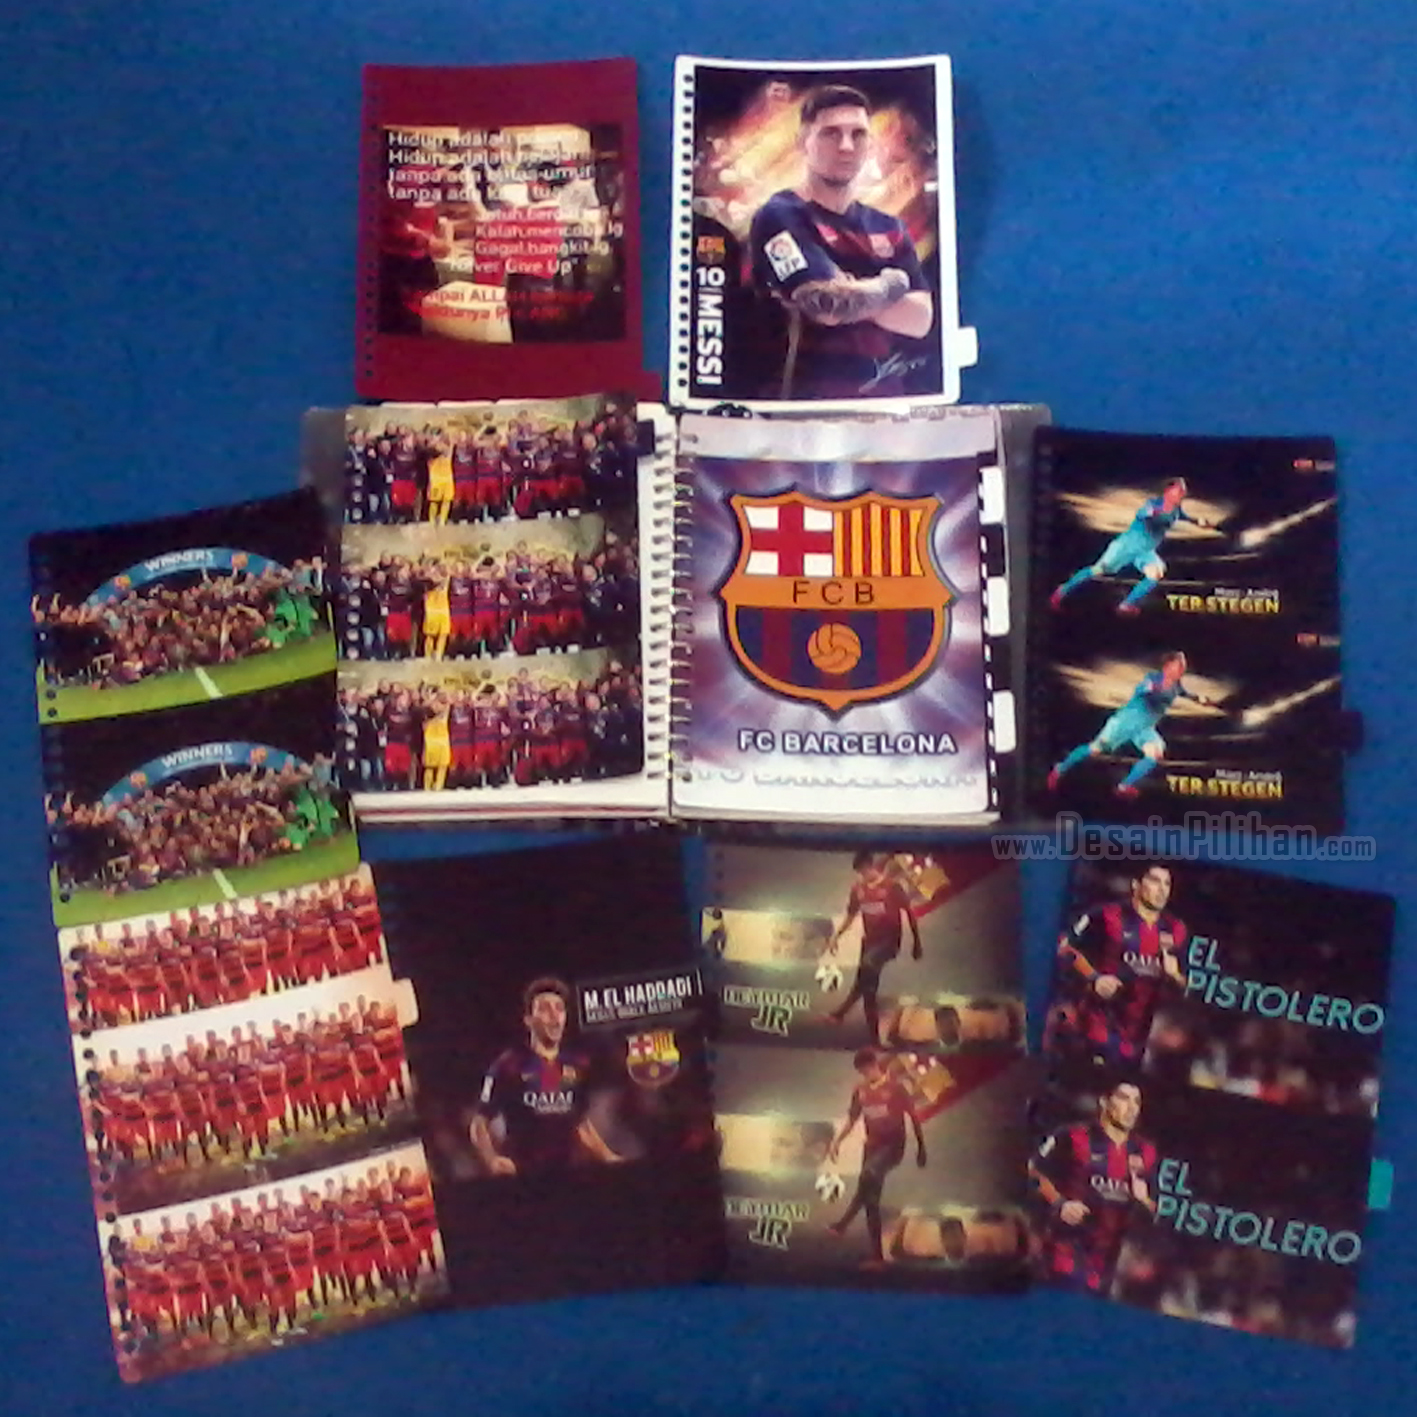 DIVIDER BINDER CUSTOM, PEMBATAS BINDER FOOTBALL CLUB, PEMBATAS BINDER BARCELONA